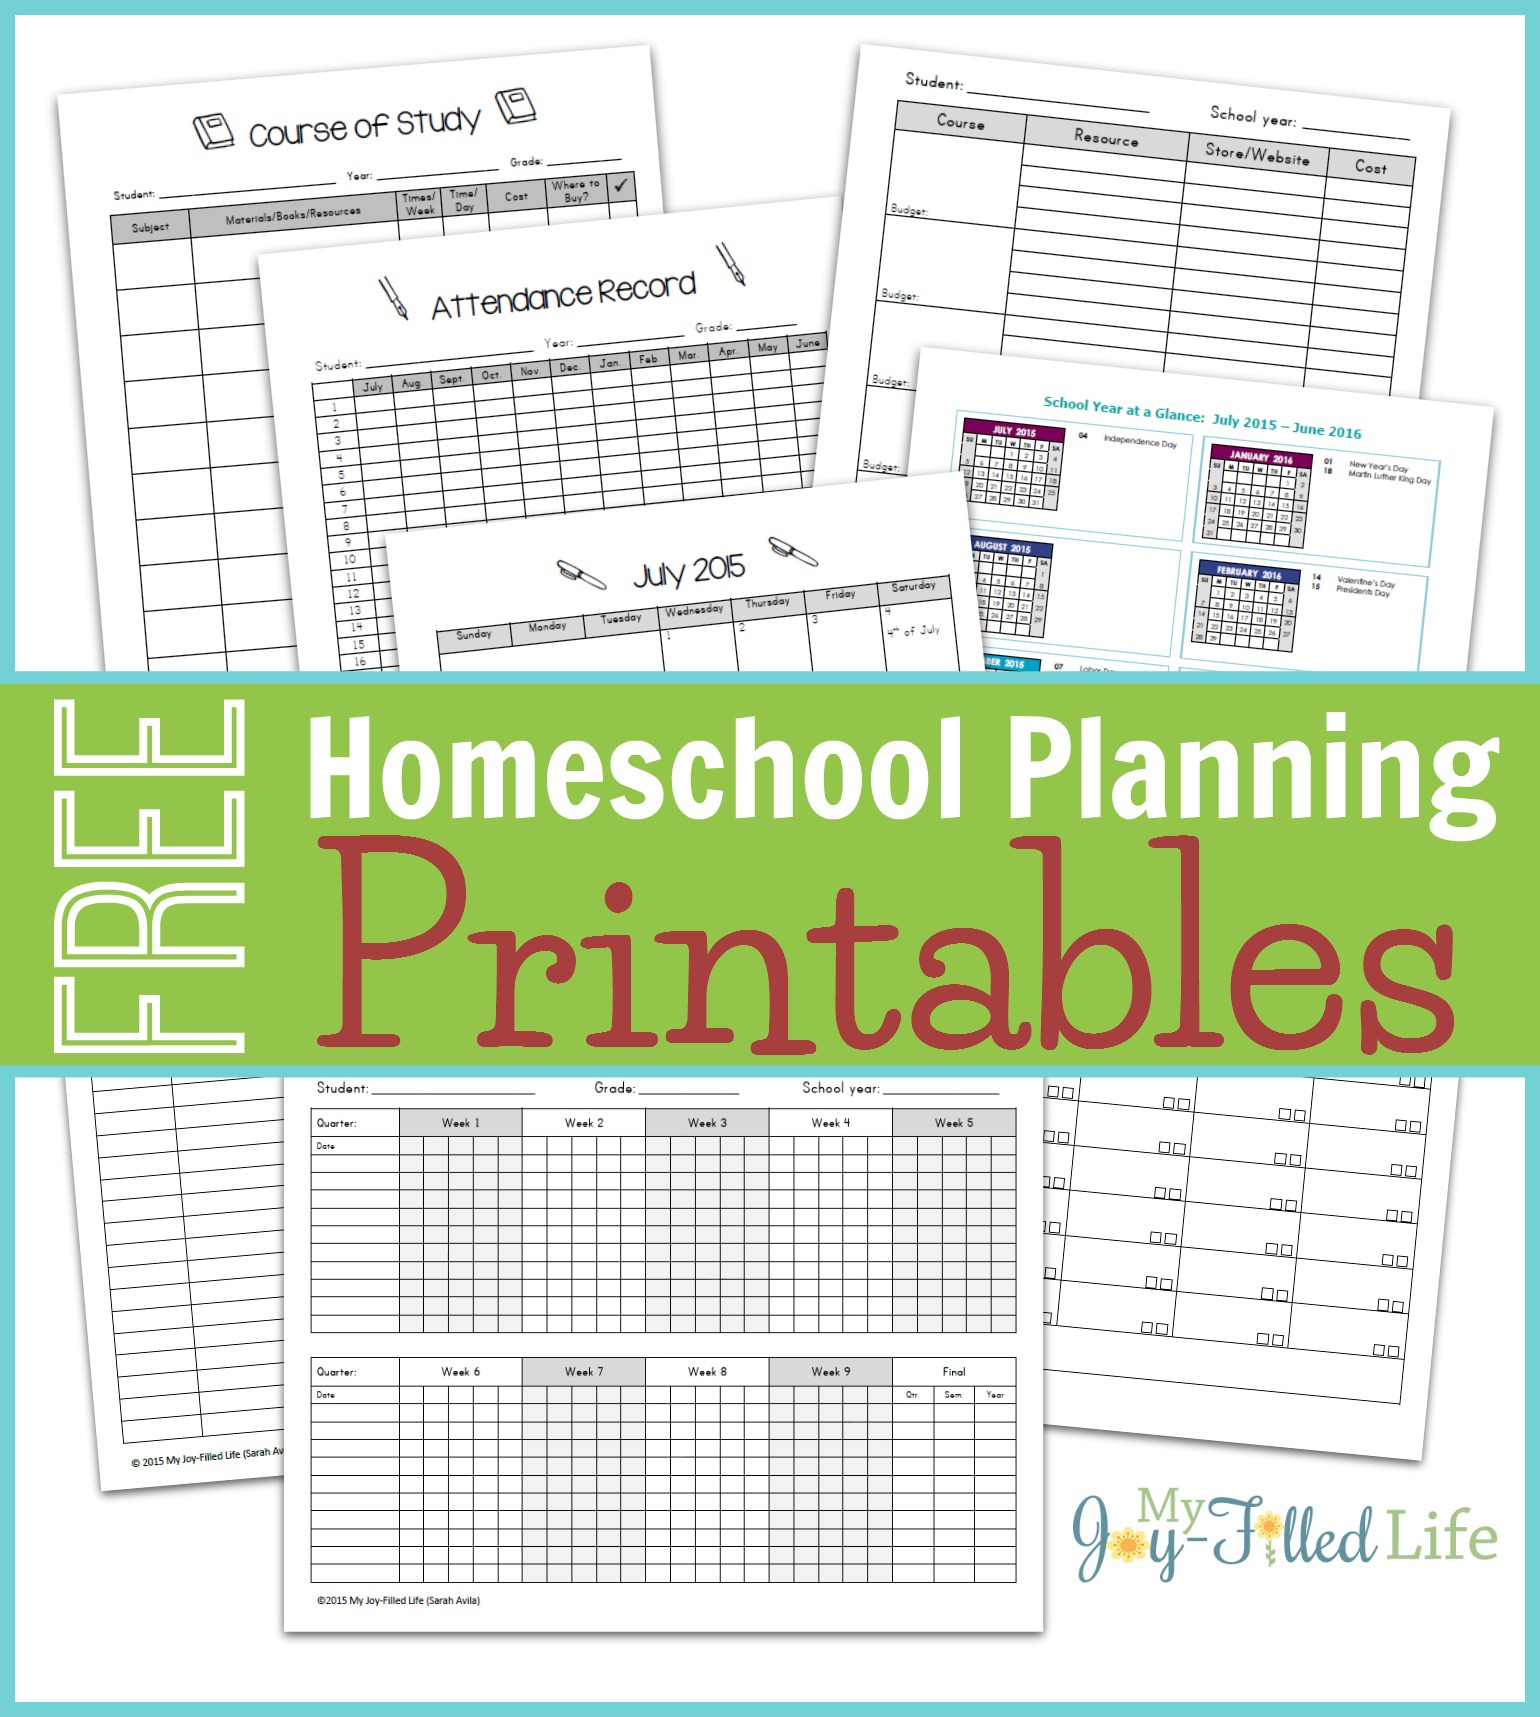 Homeschool Planning Resources & Free Printable Planning Pages - My - Free Printable Homeschool Curriculum